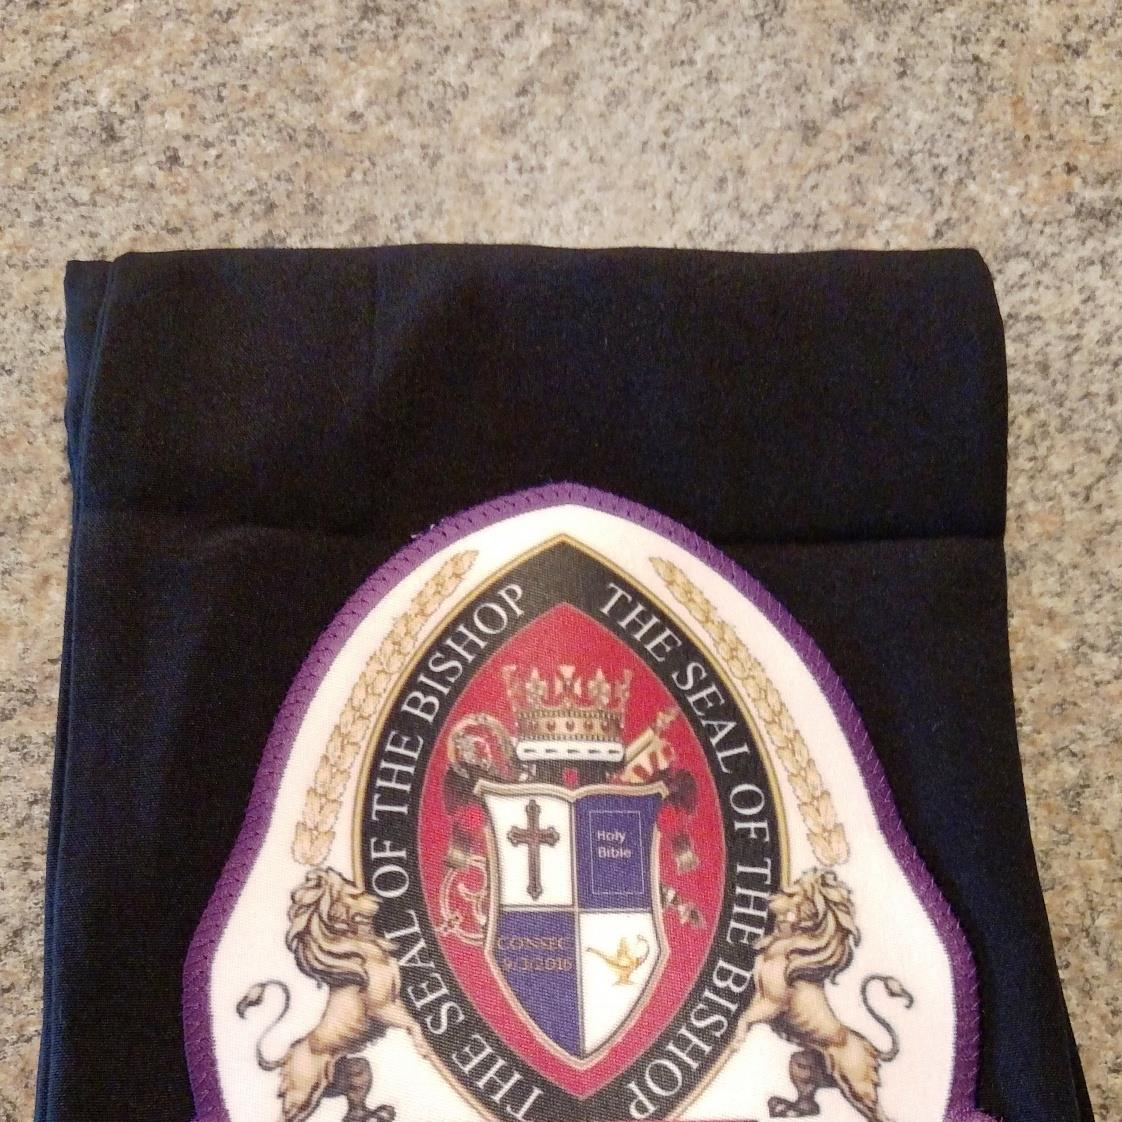 Seal of the Bishop patch